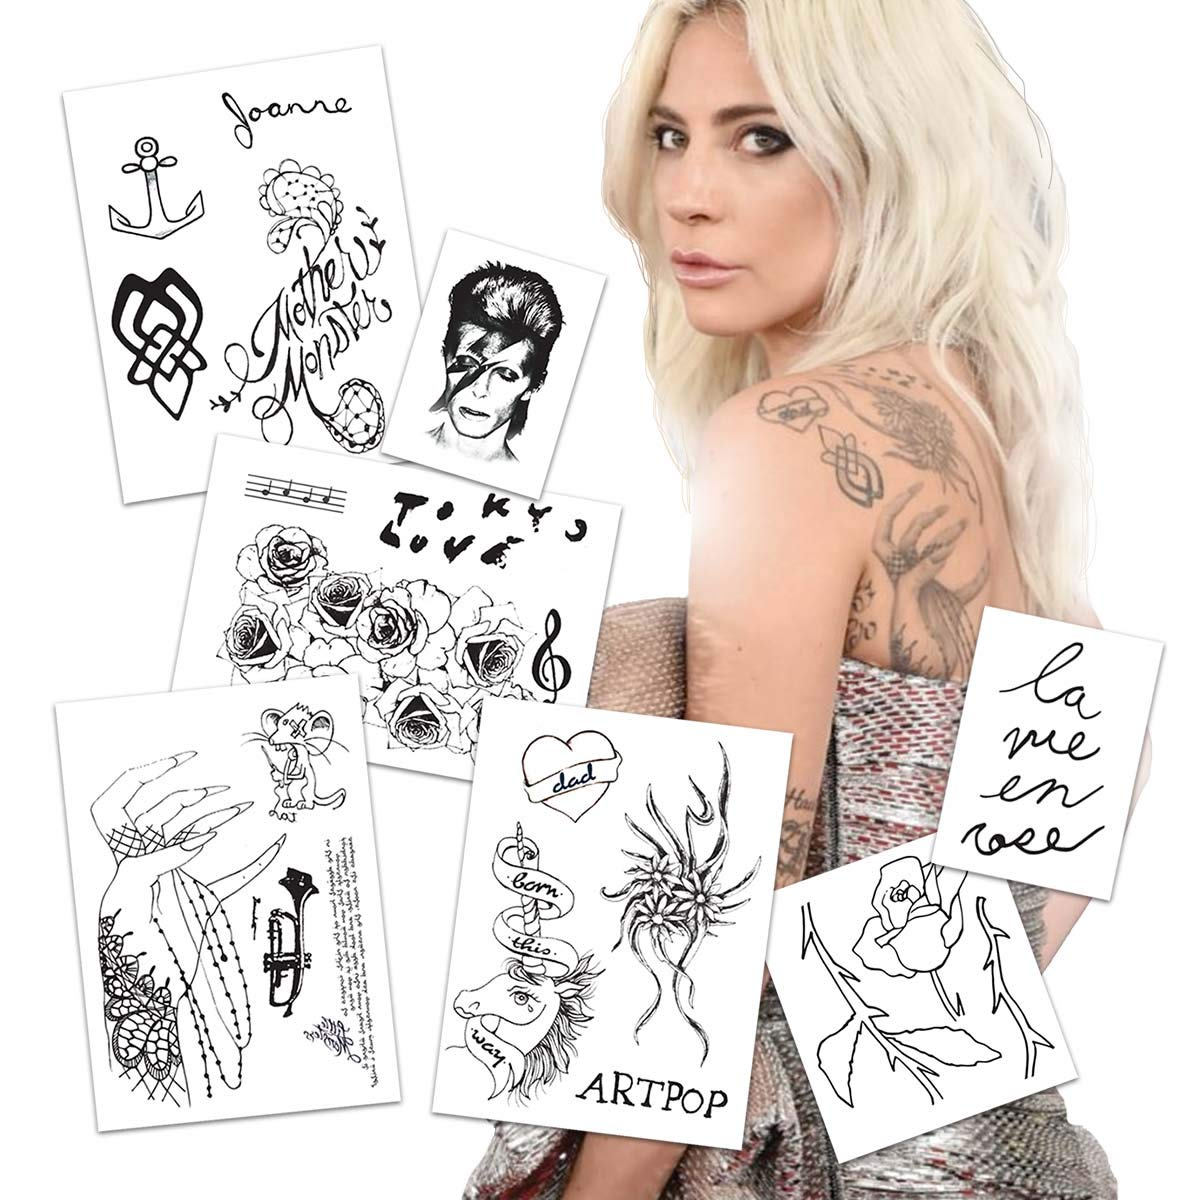 Lady Gaga Life Size Temporary Tattoos 2019 Mega Pack   Skin Safe   MADE IN THE USA  Removable